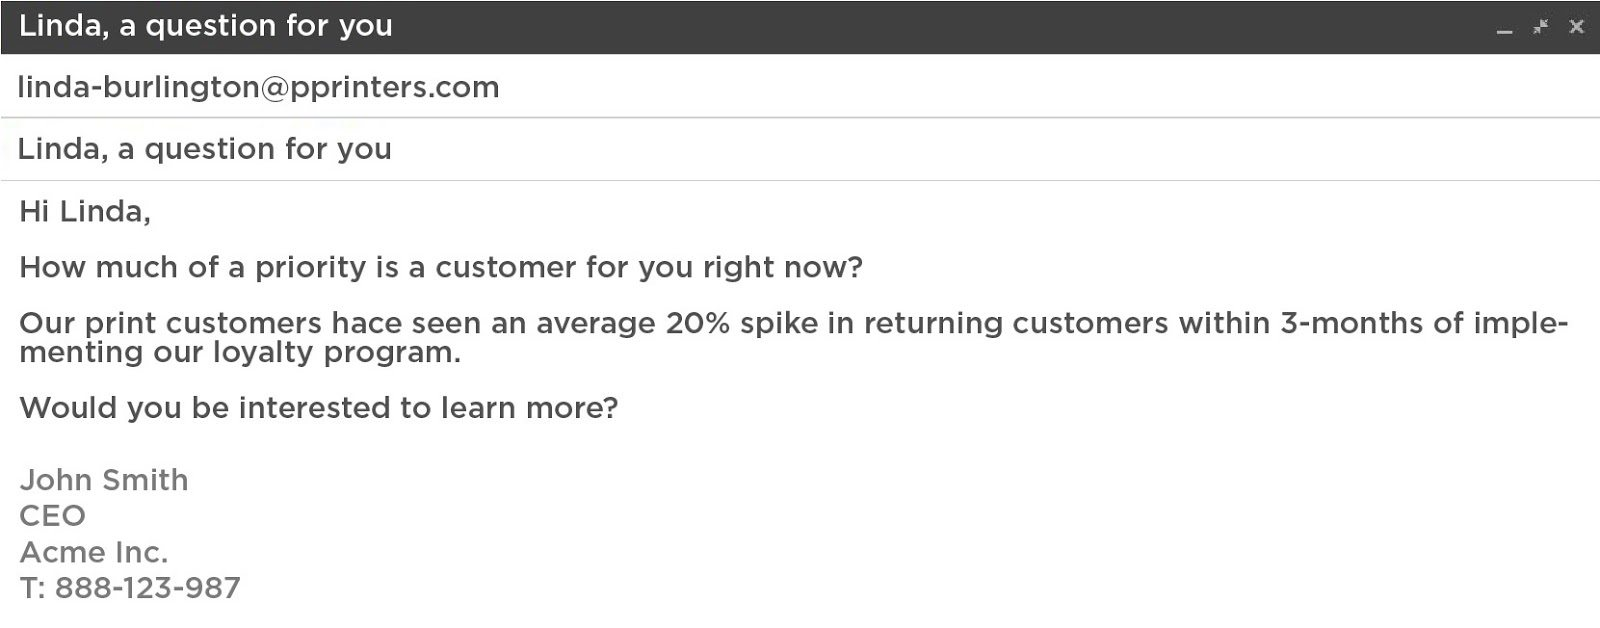 sales email template highlight priority